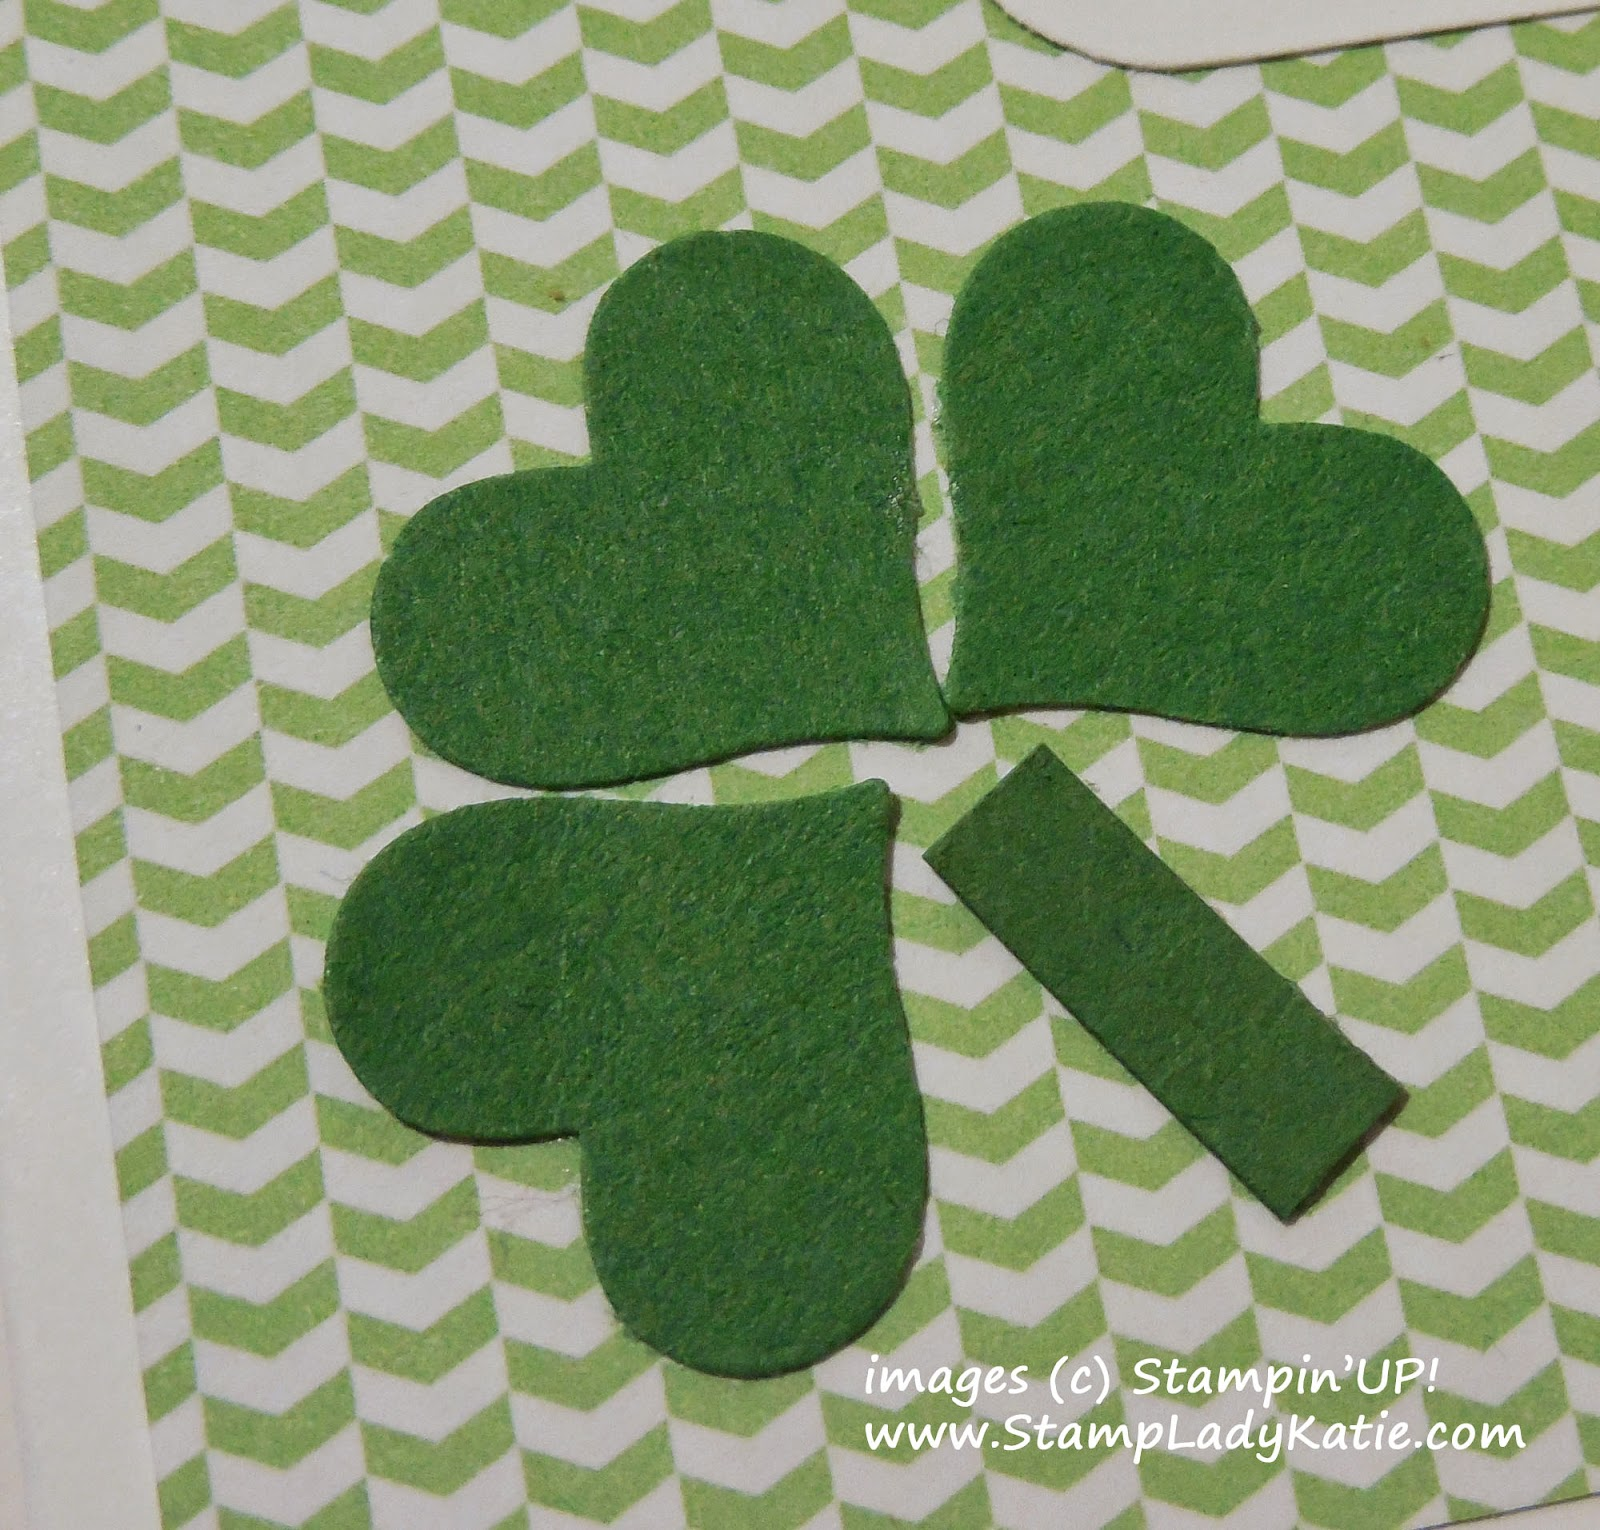 The Shamrock for the St. Patrick's Day Card